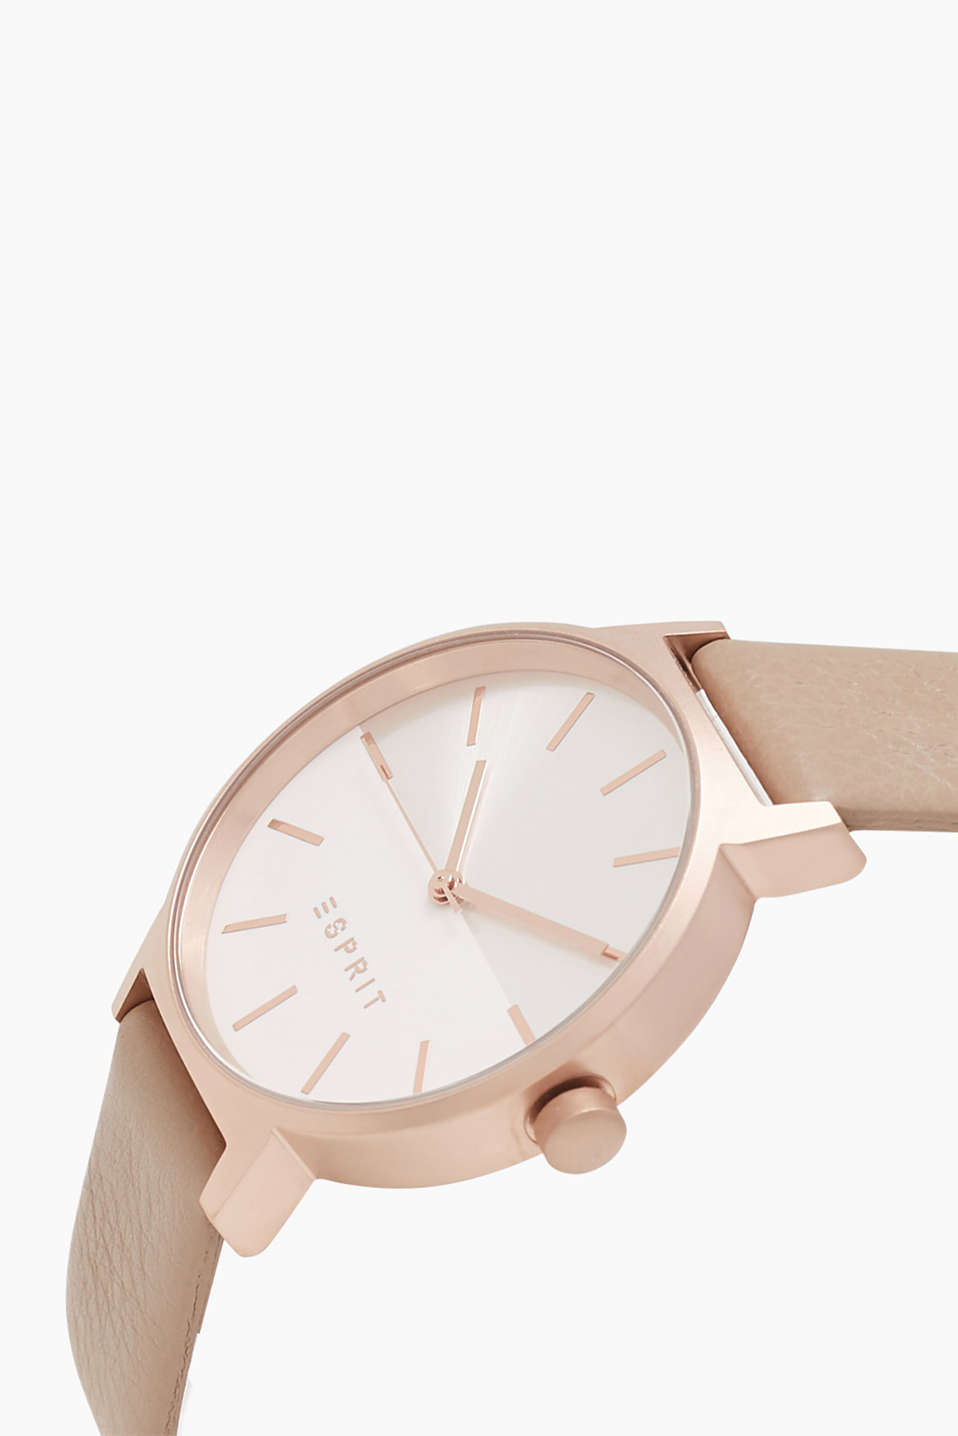 Watch with a matte casing in rose gold